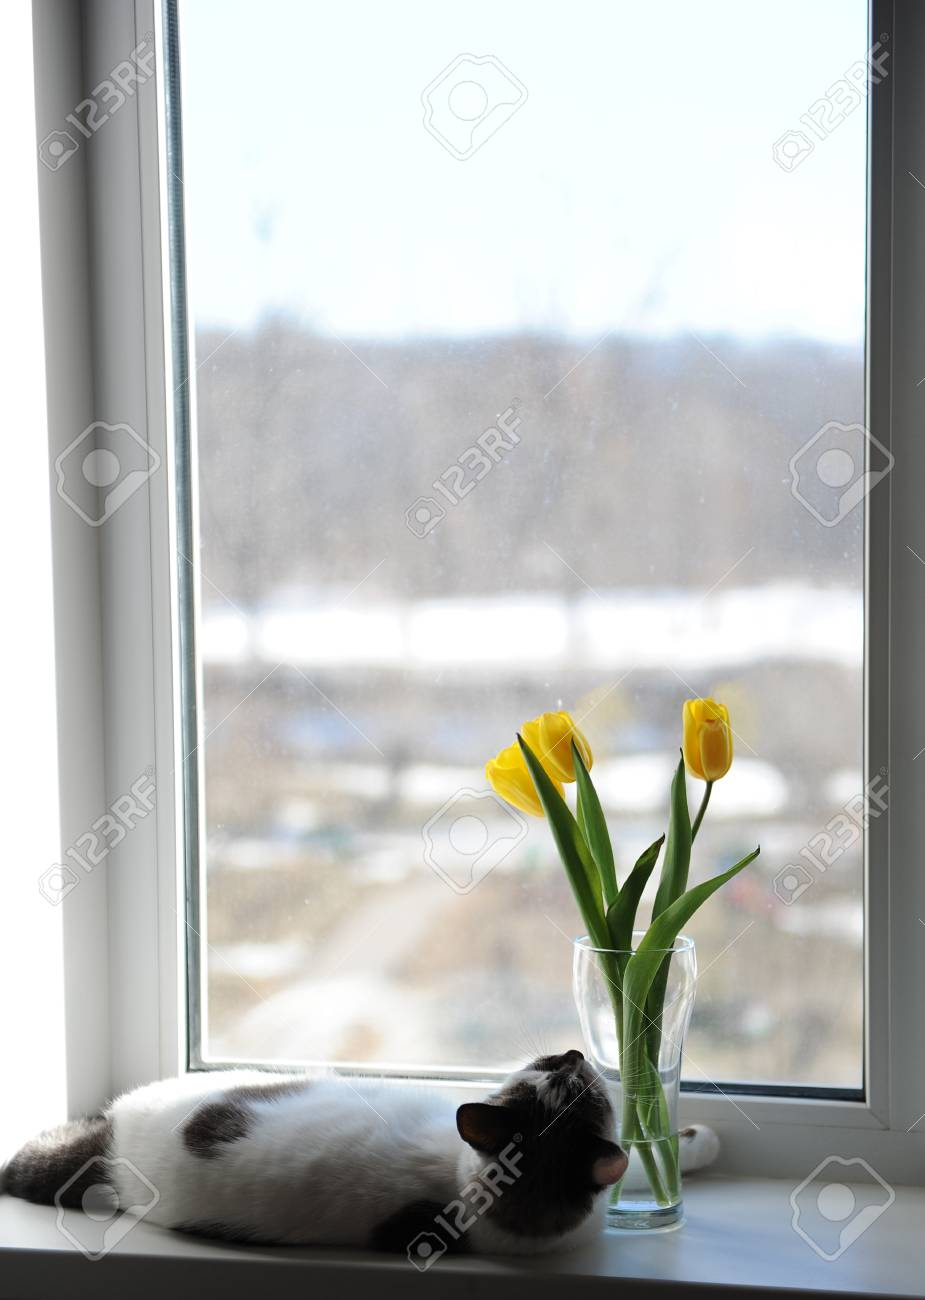 White Fluffy Cat And Bouquet Of Flowers Yellow Tulips In A Glass